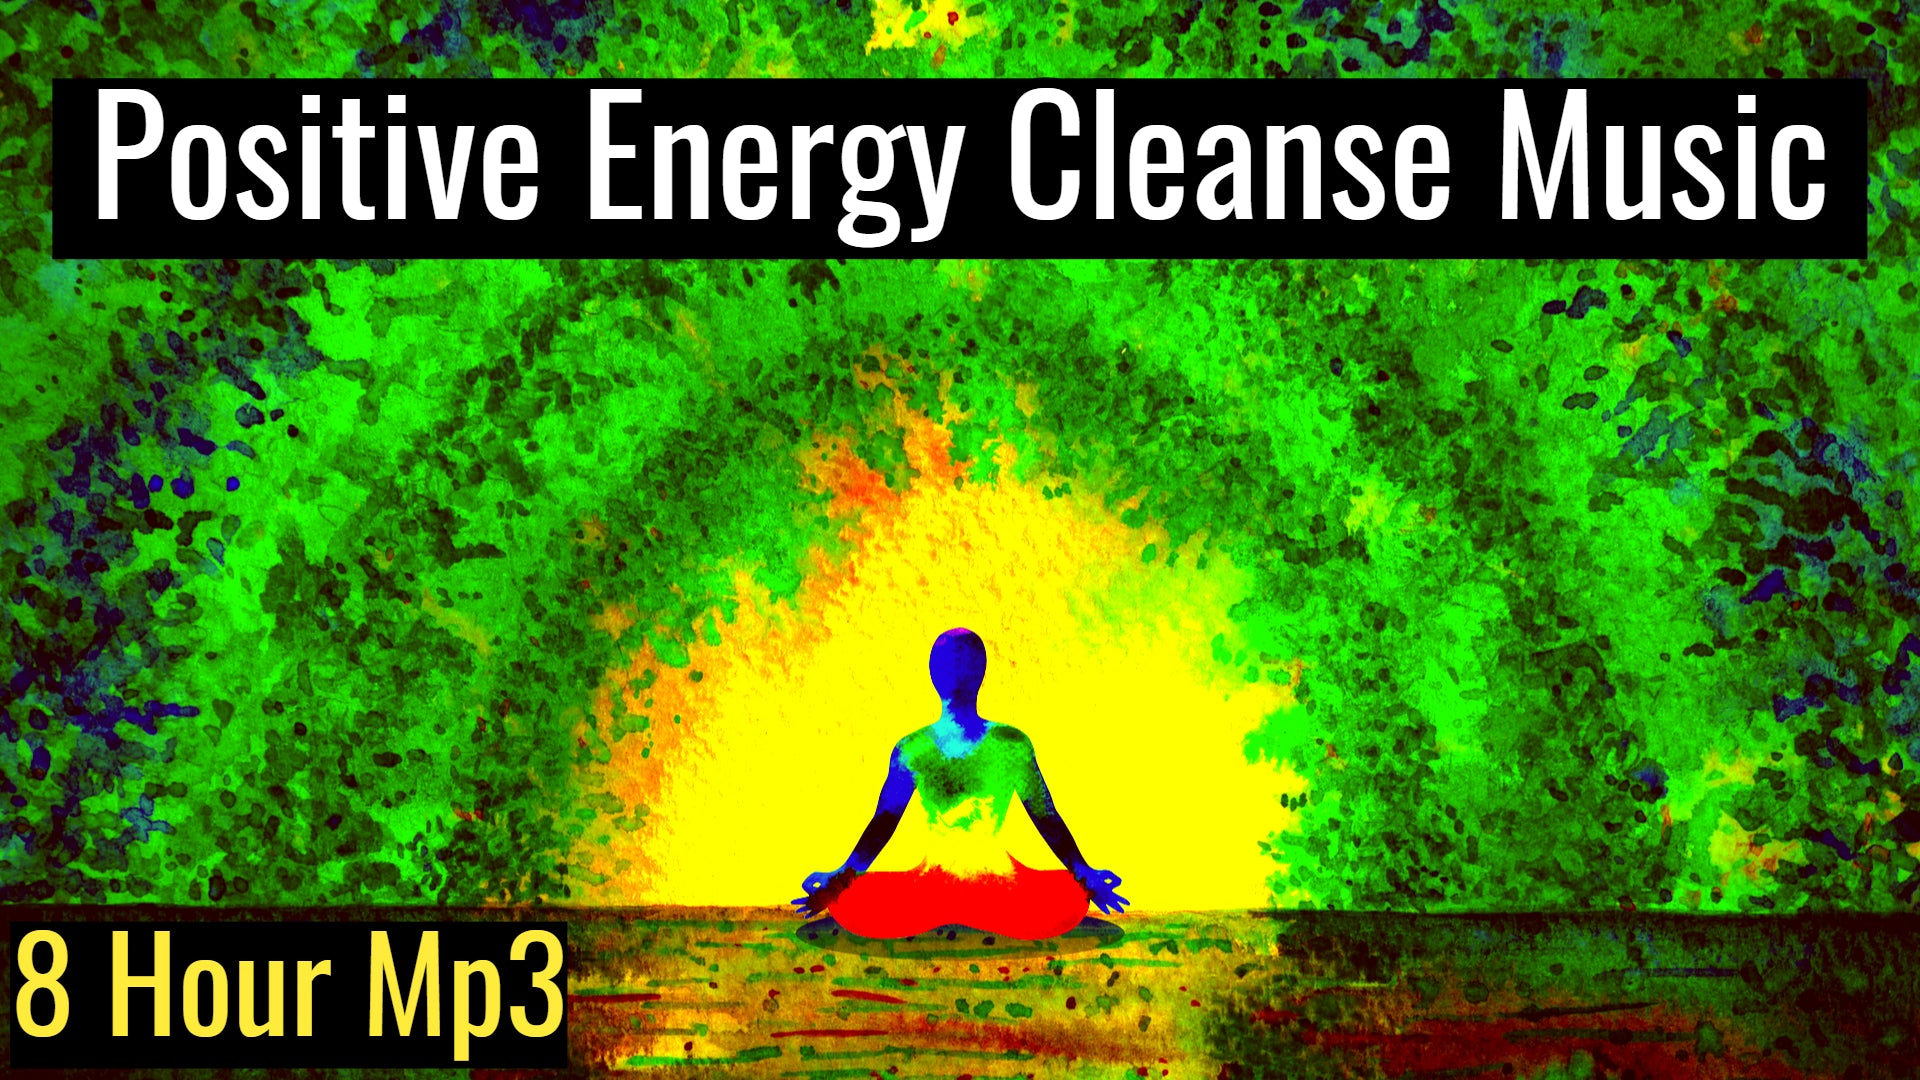 Positive Energy Cleanse (432Hz Meditation Music), Ancient Frequency Meditative Music for Healing (8 Hour Track